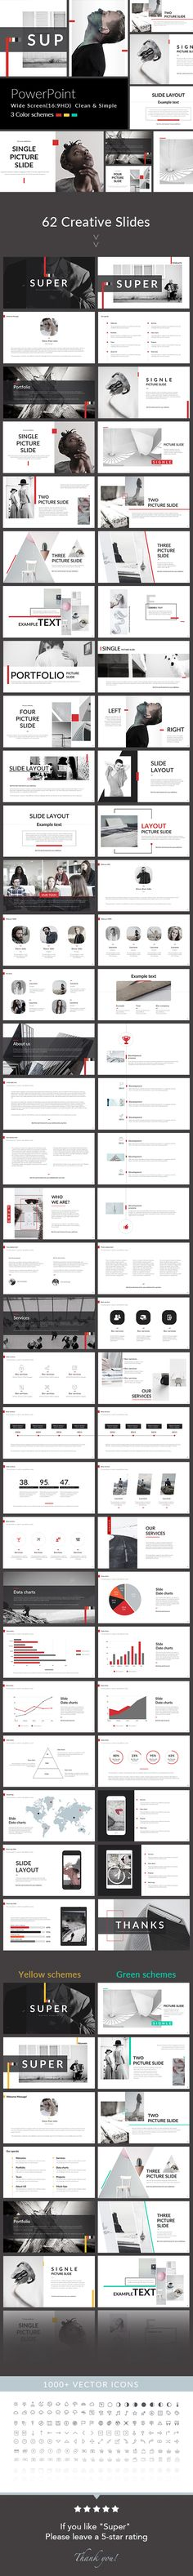 Super - PowerPoint Presentation Template - Creative PowerPoint Templates